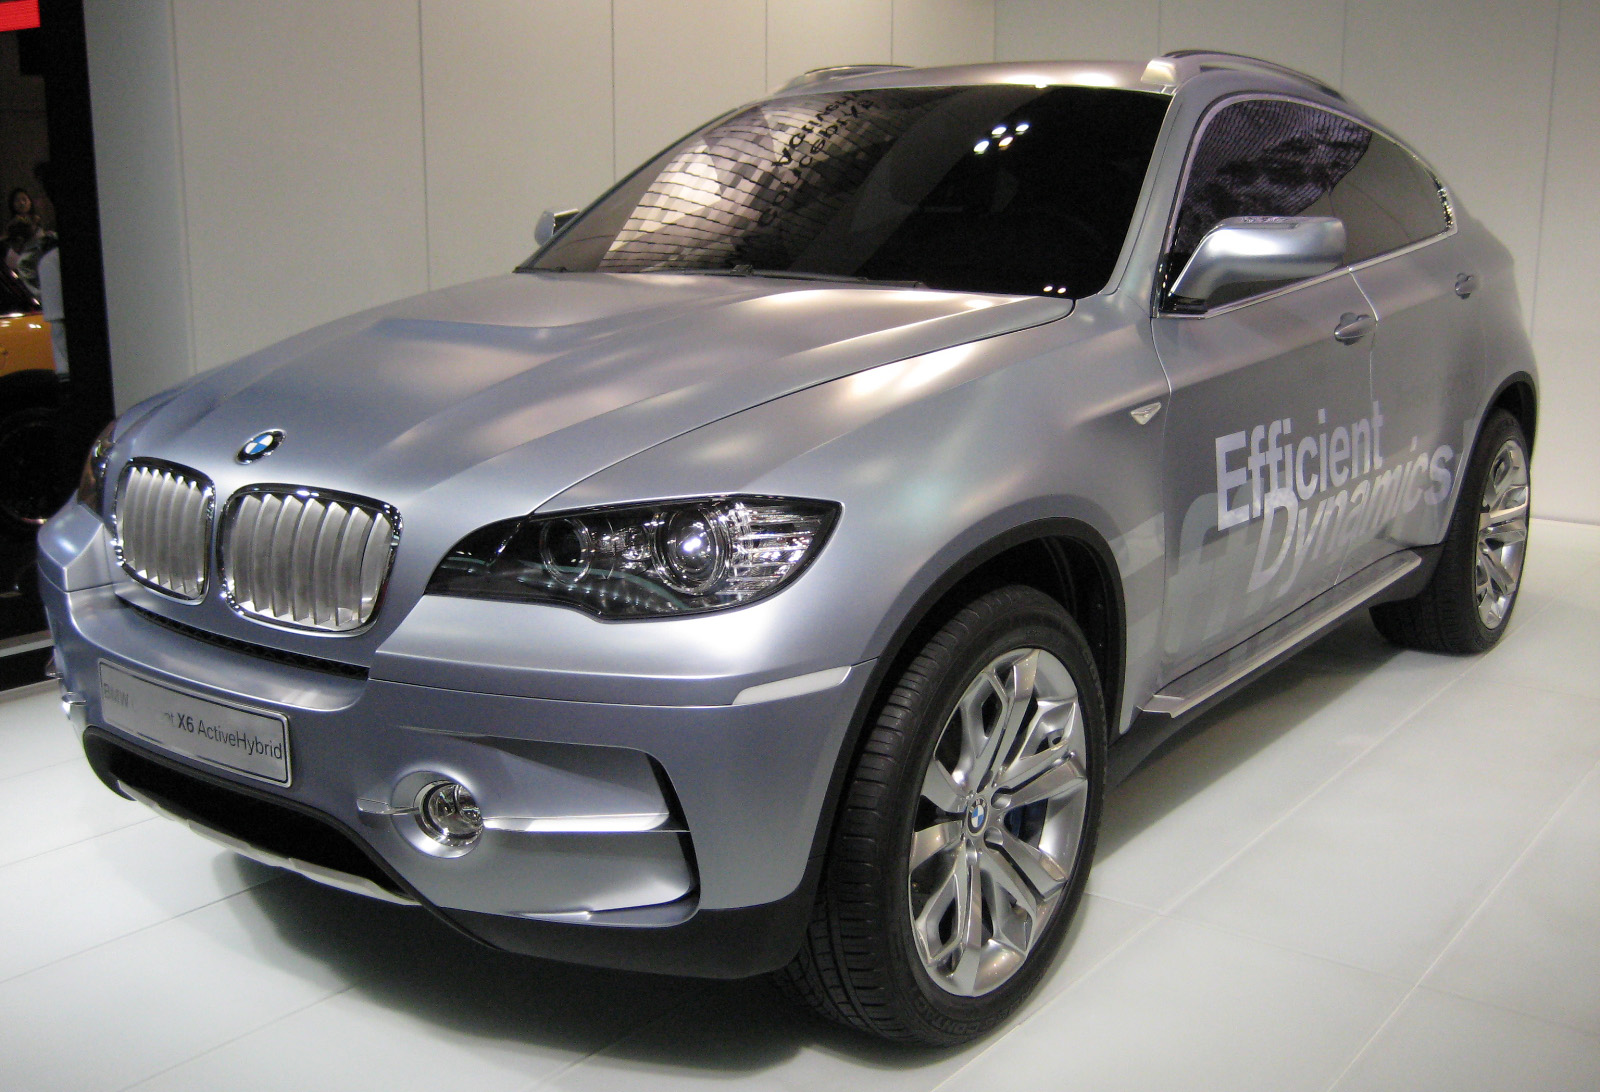 File:BMW Concept X6 Active Hybrid 01.JPG - Wikimedia Commons